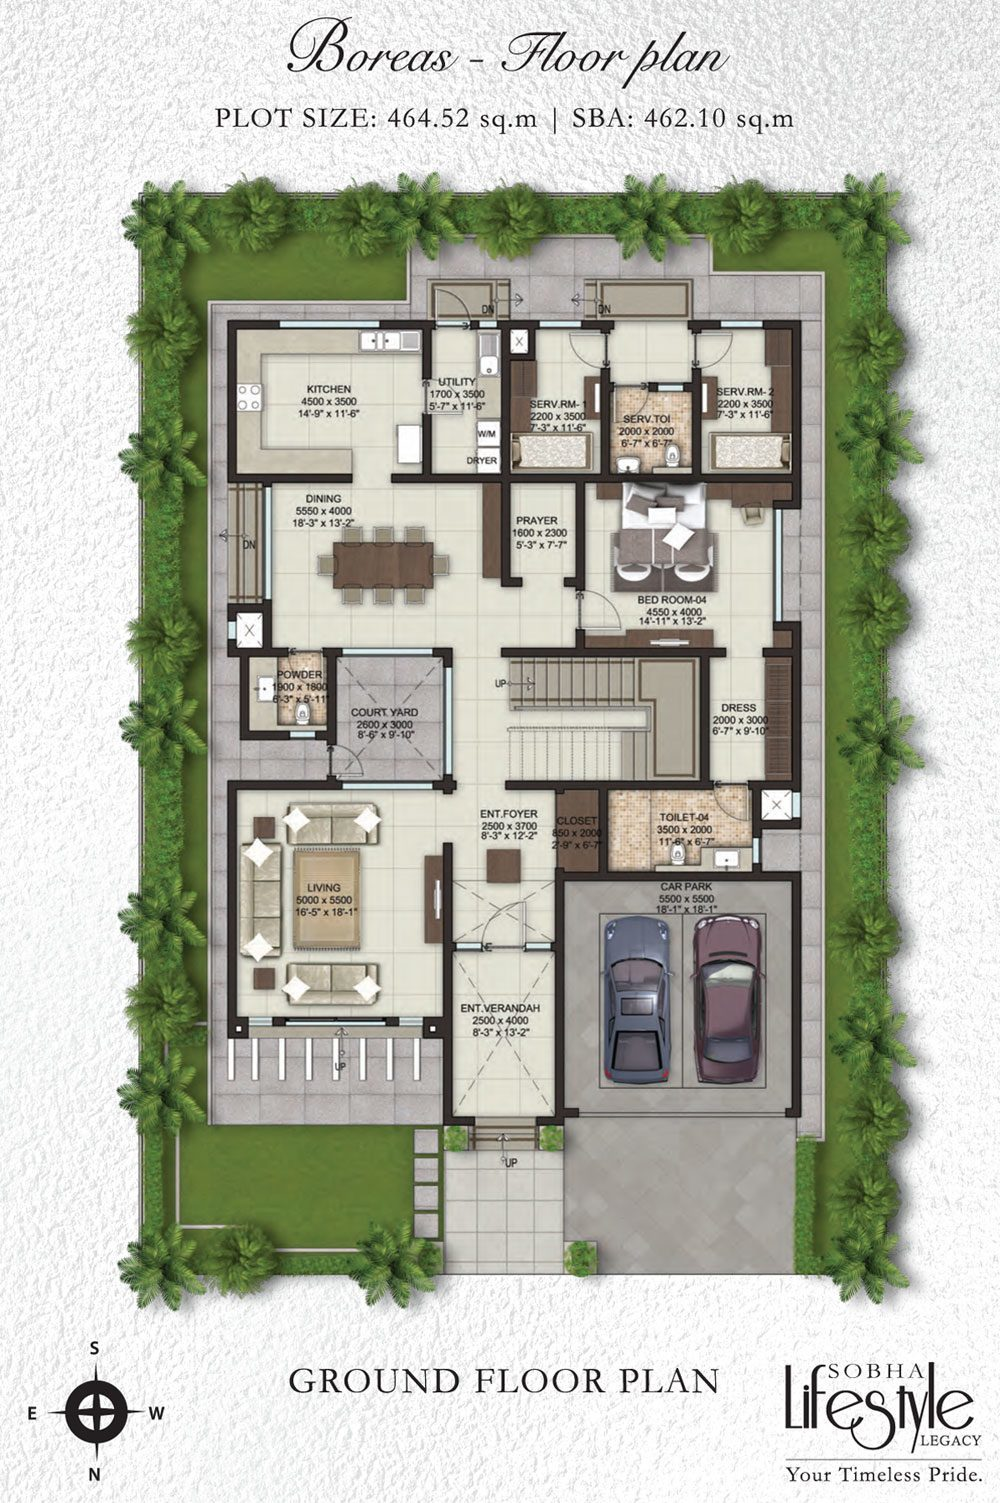 Ground Floor Plan Property First